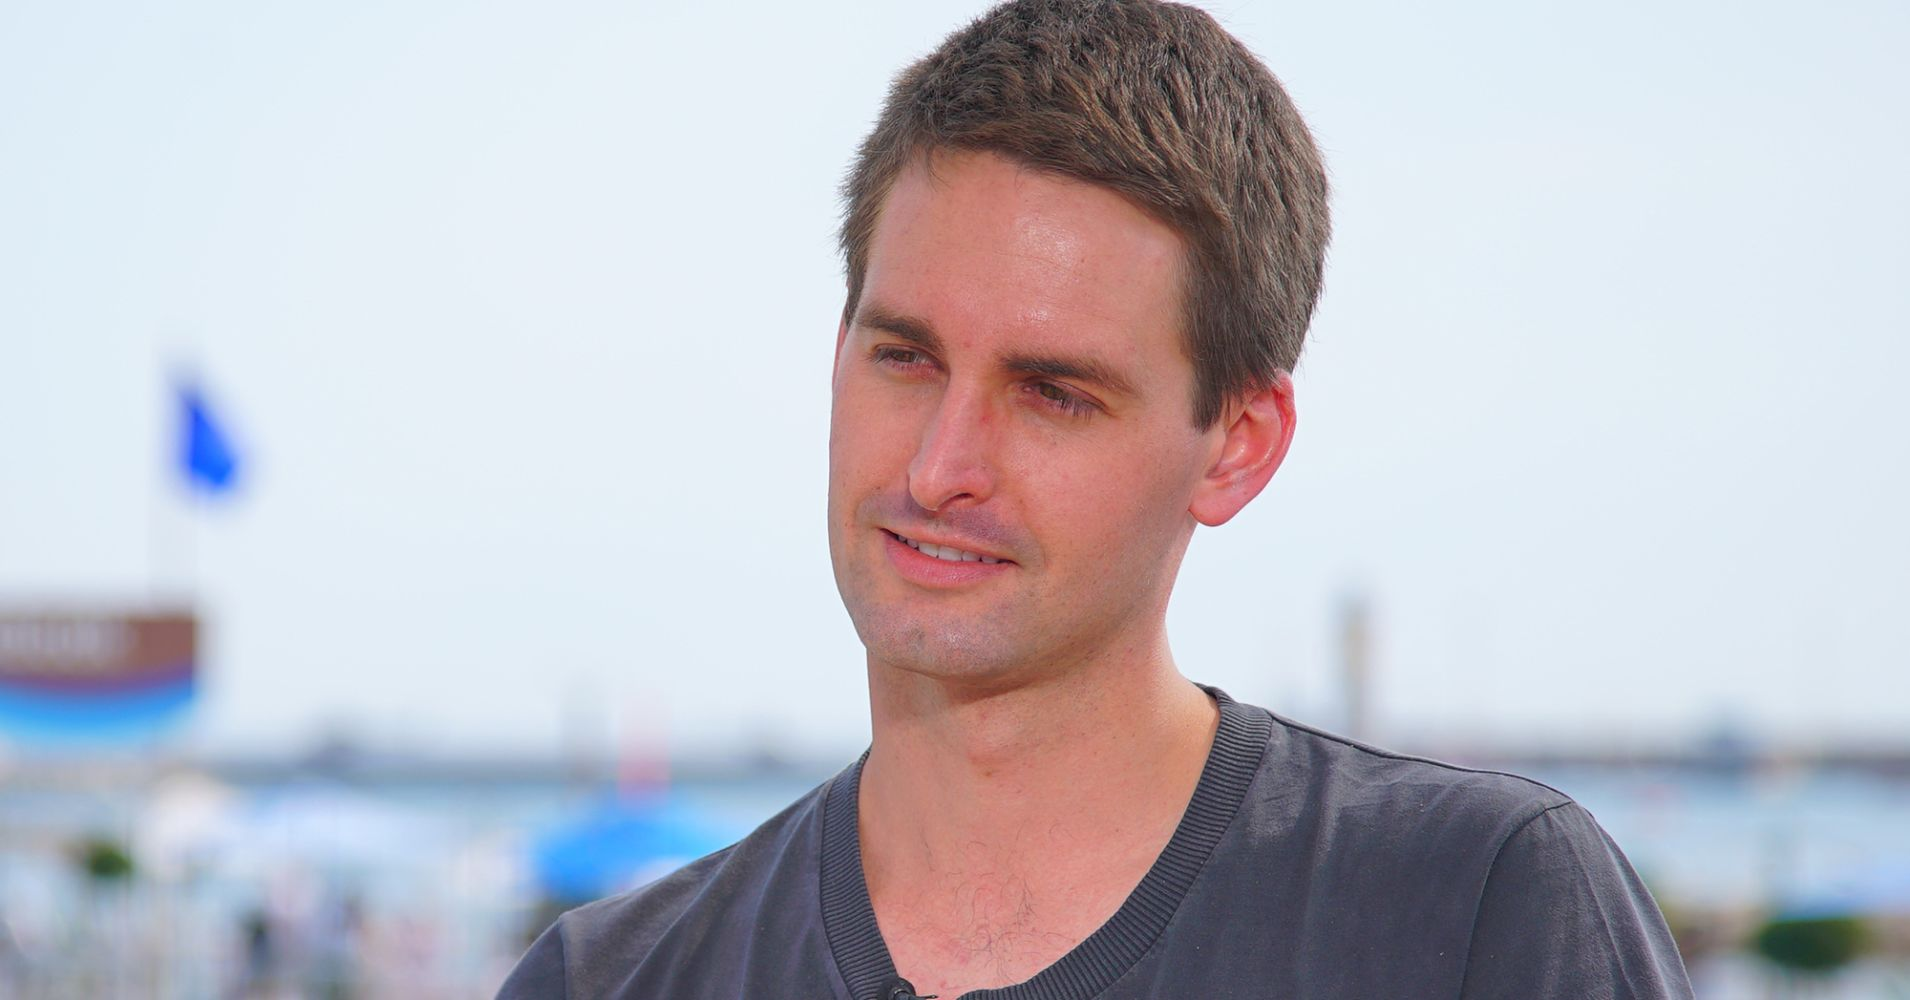 Evan Spiegel, CEO and co-founder of Snap Inc.